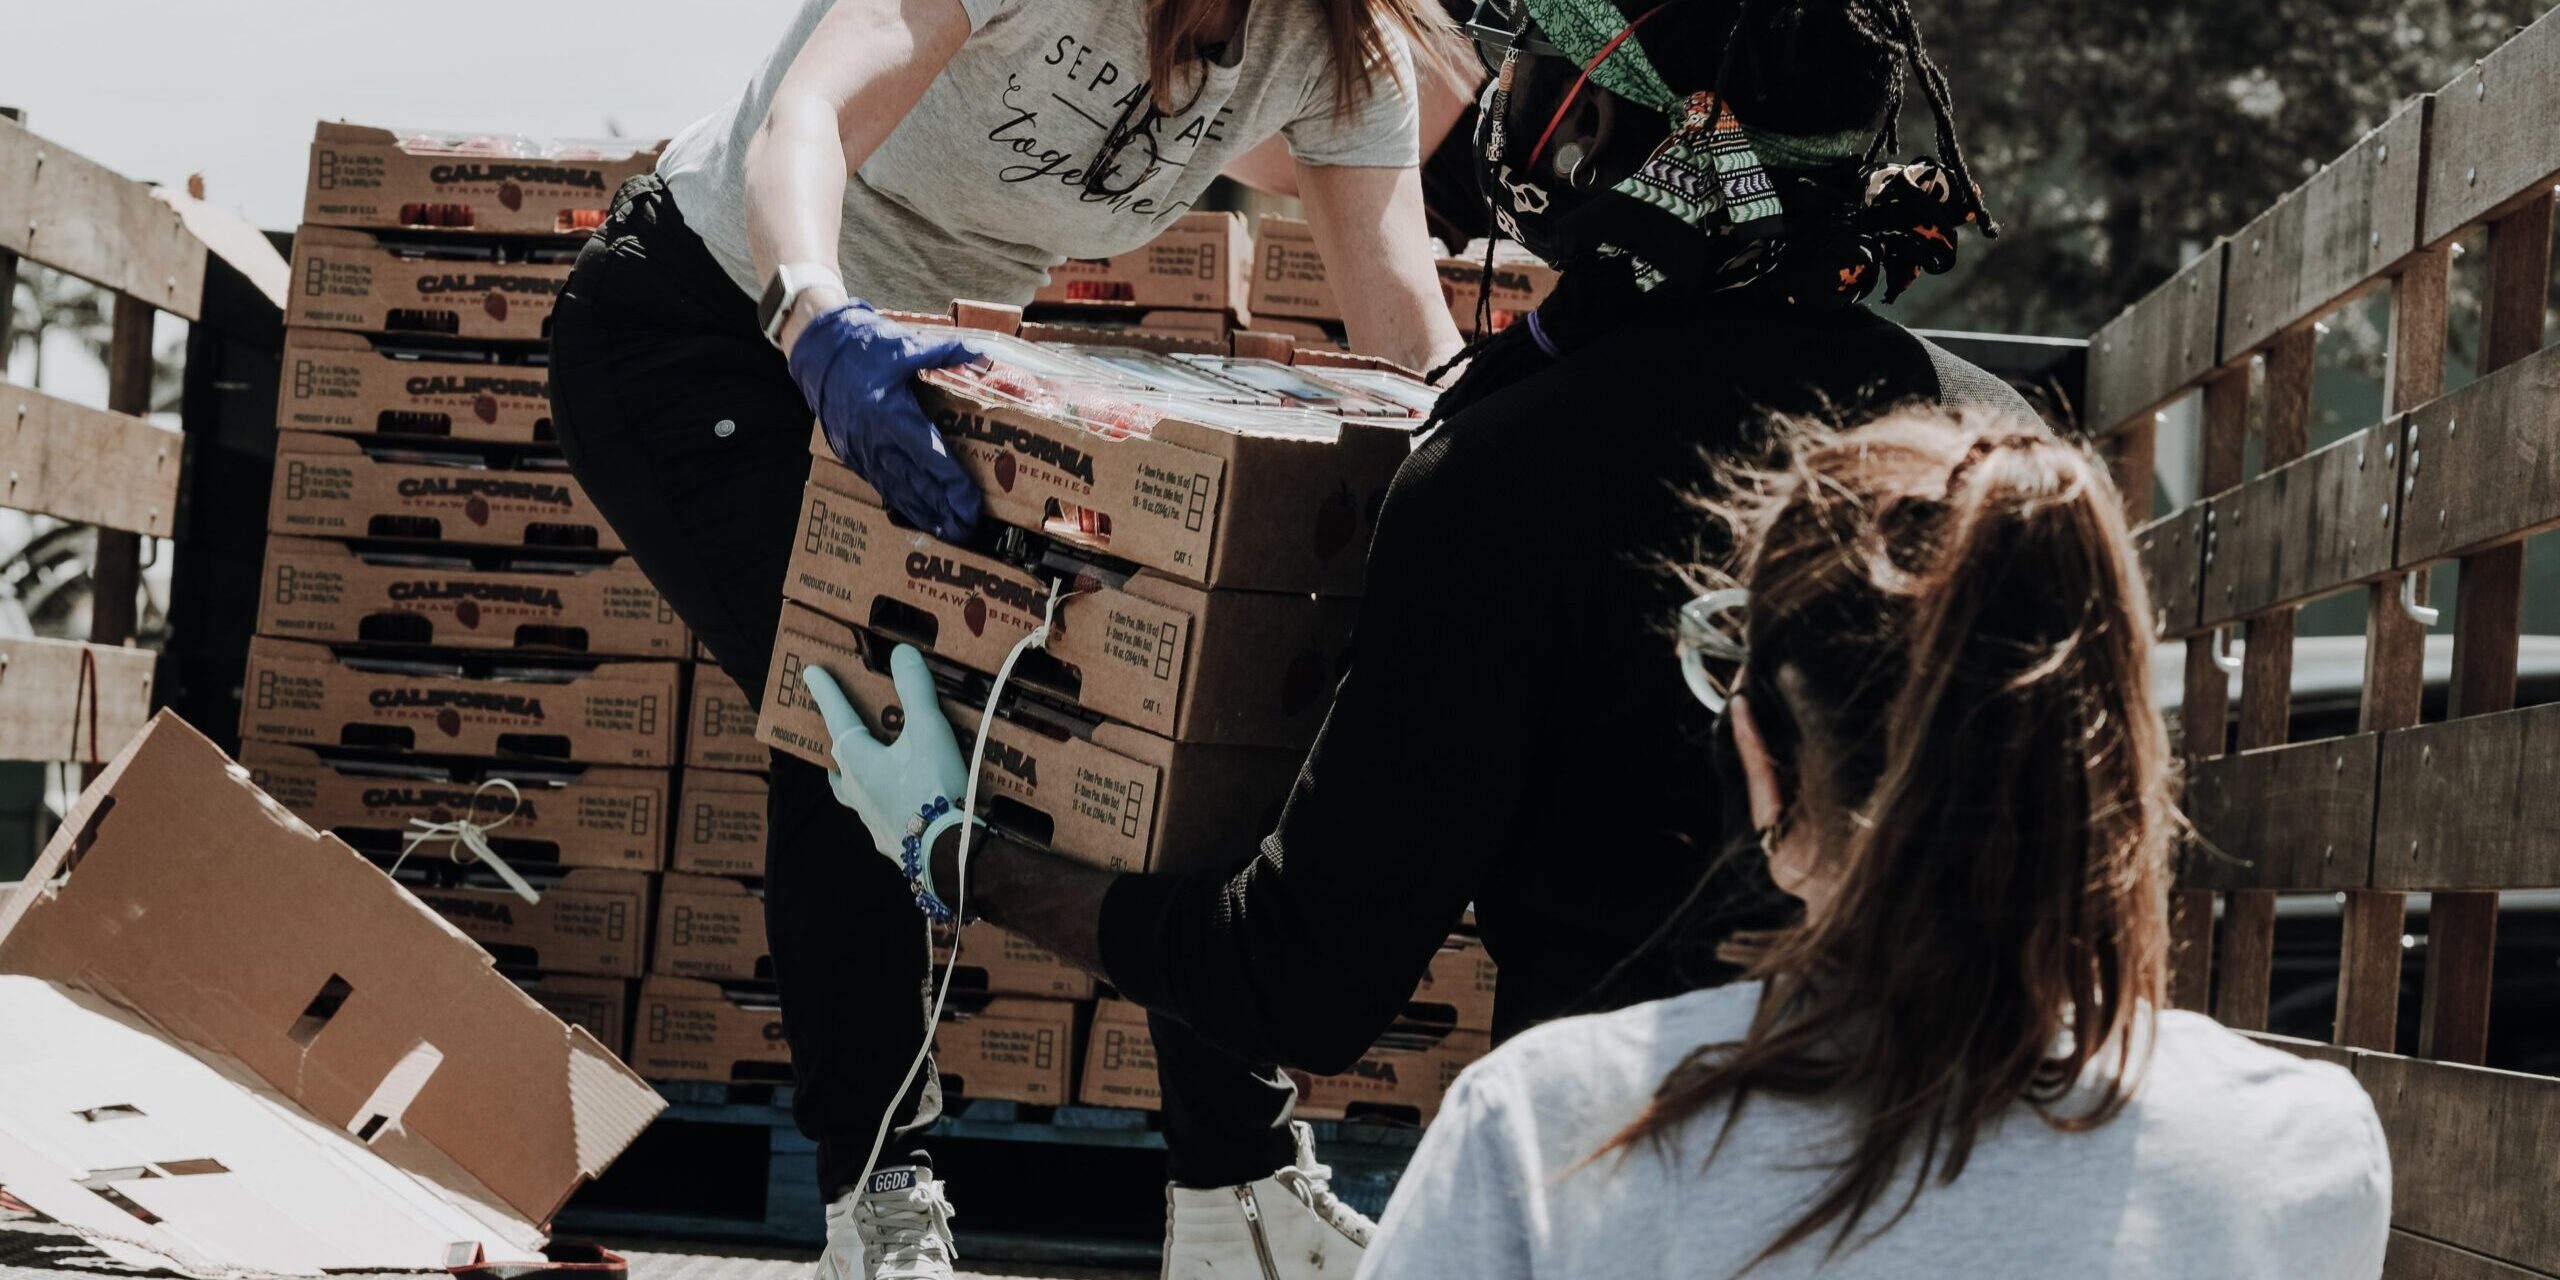 Three people in masks loading boxes off of a truck during a volunteer effort.